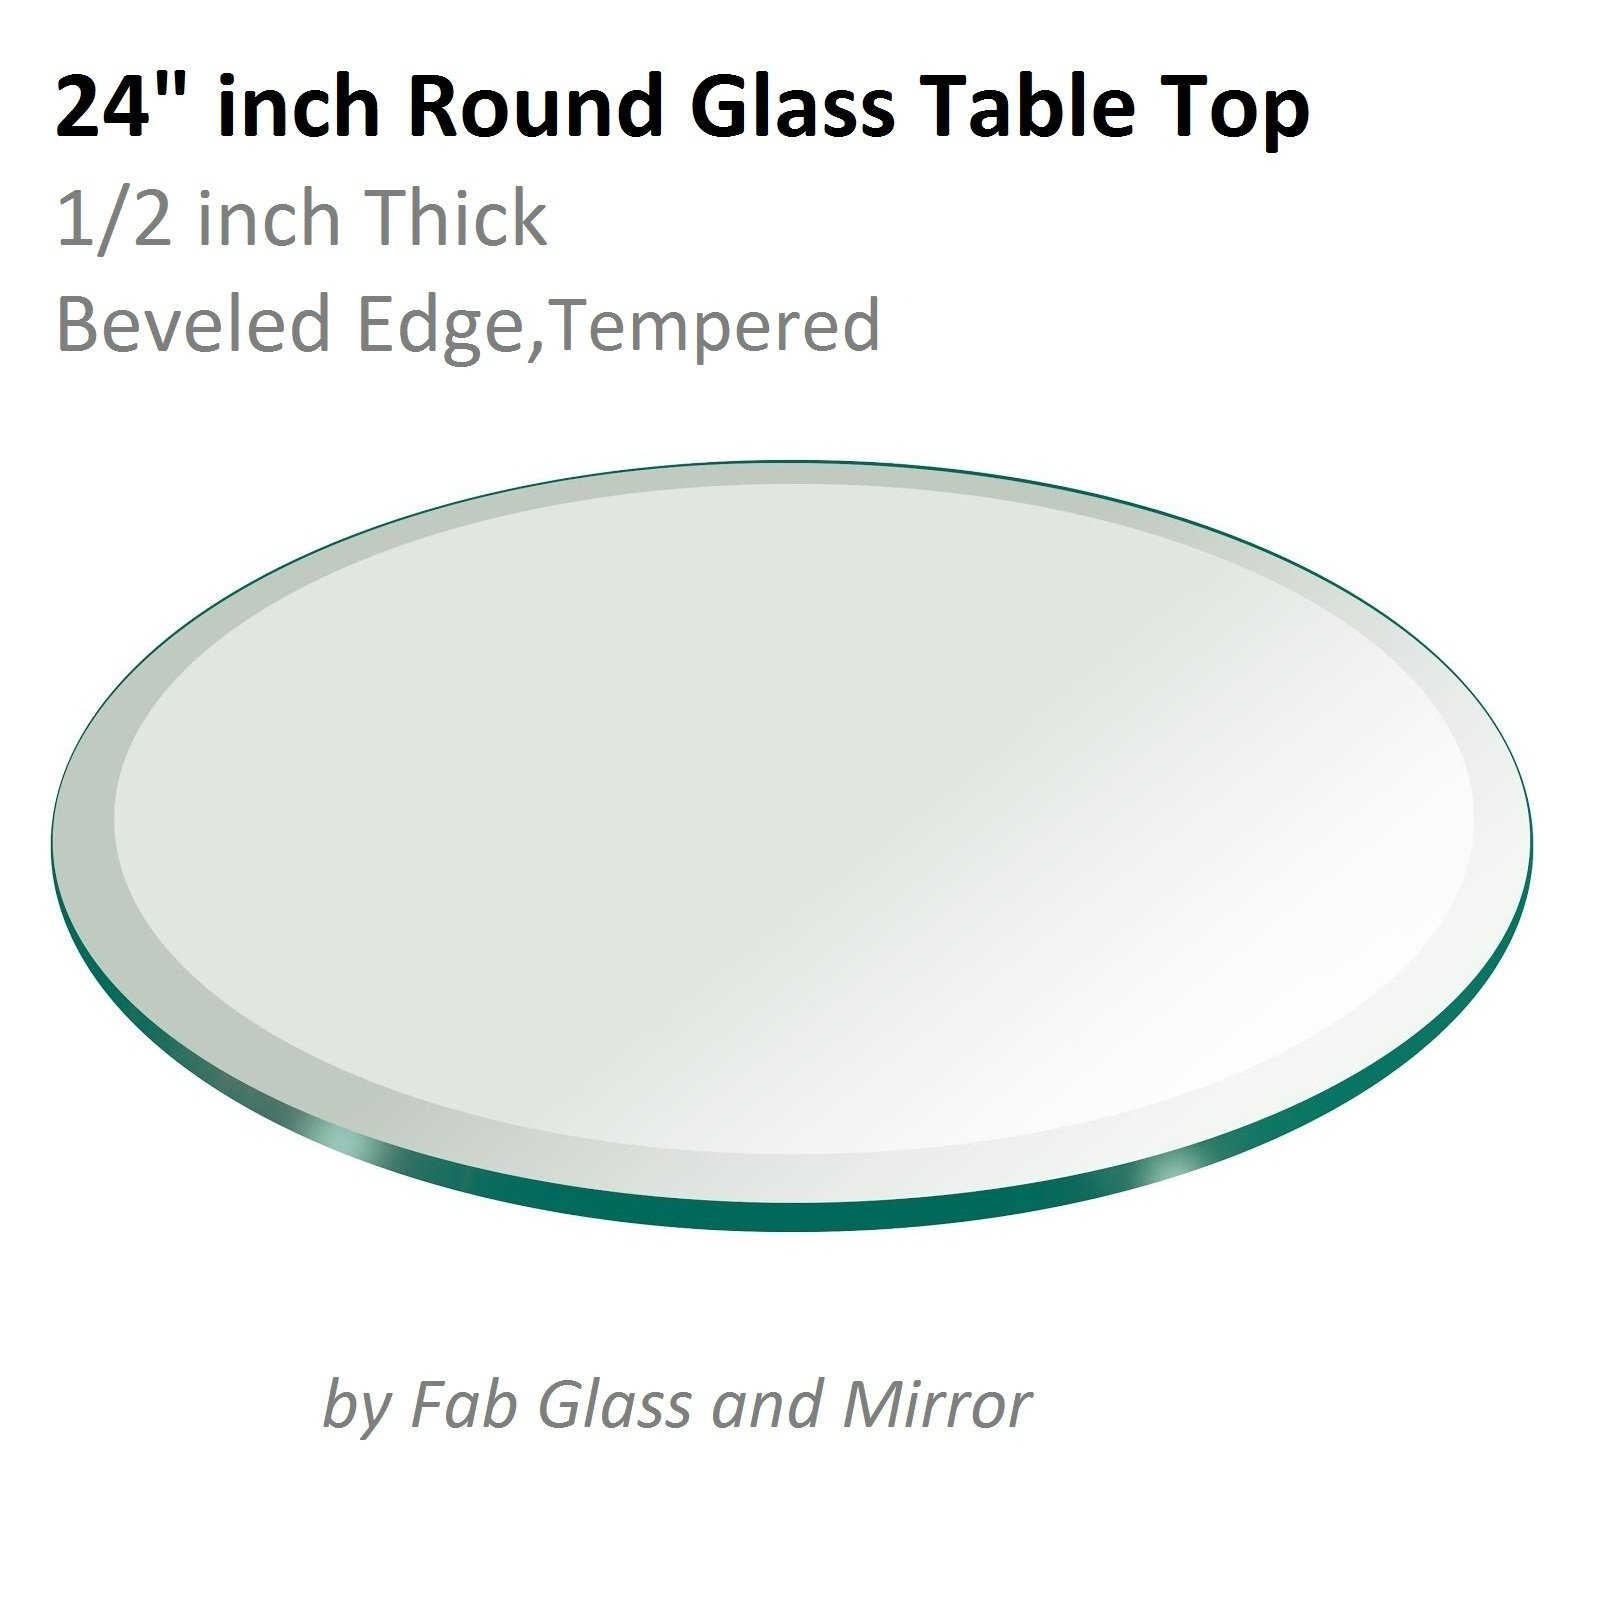 24'' Inch Round Glass Table Top 1/2'' Thick Tempered Beveled Edge by Fab Glass and Mirror